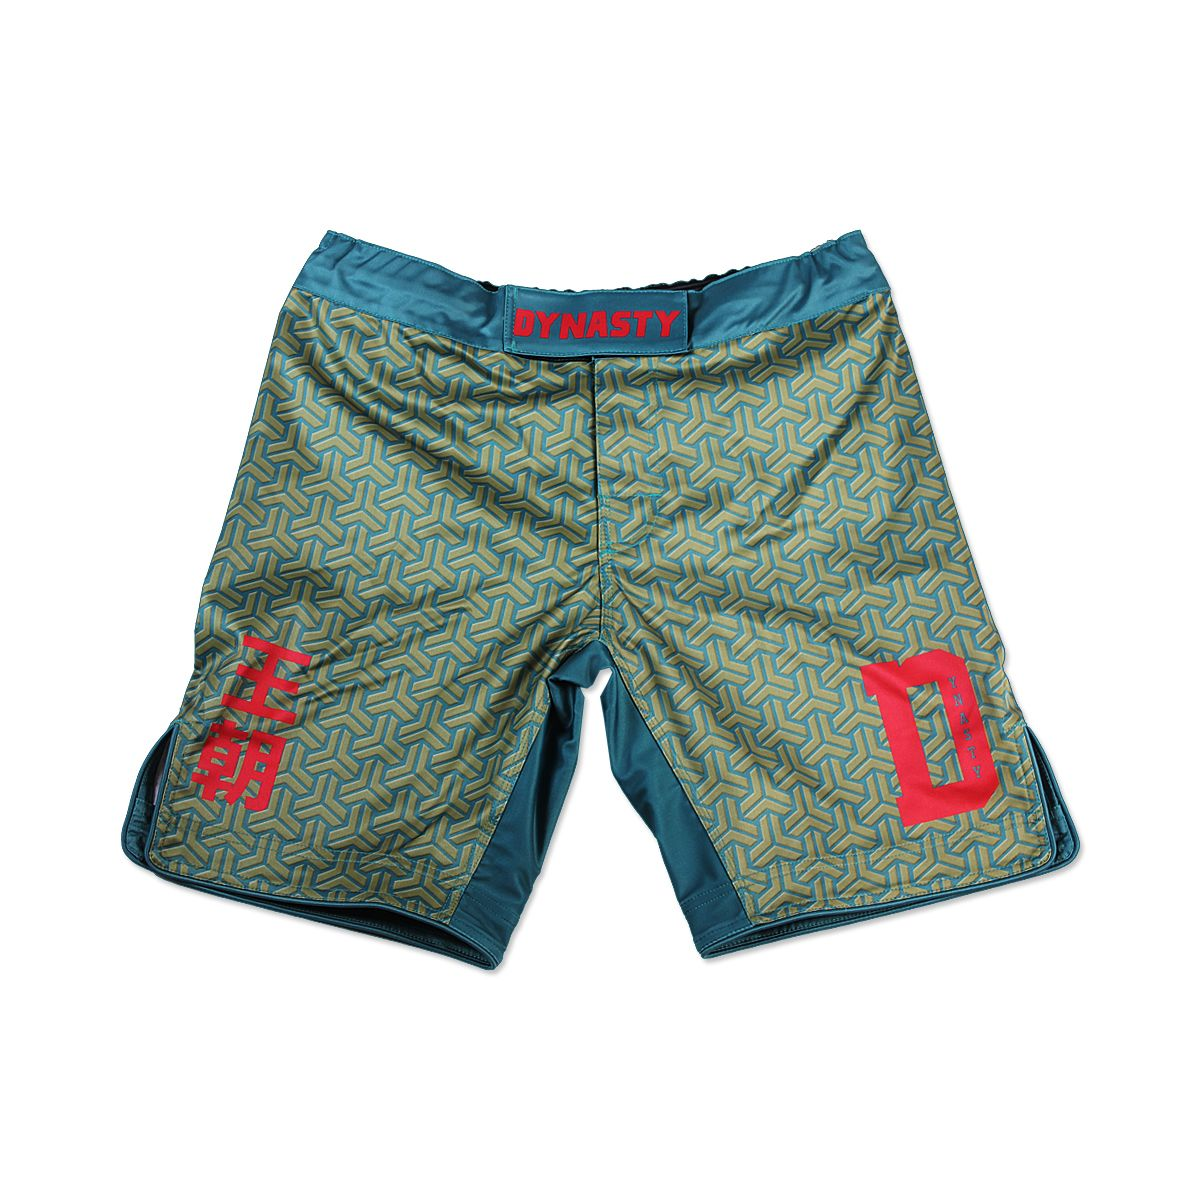 Dynasty Clothing Mma God Of War Elite Mma Fight Shorts Fight Shorts Dynasty Clothing Mma Fight Shorts